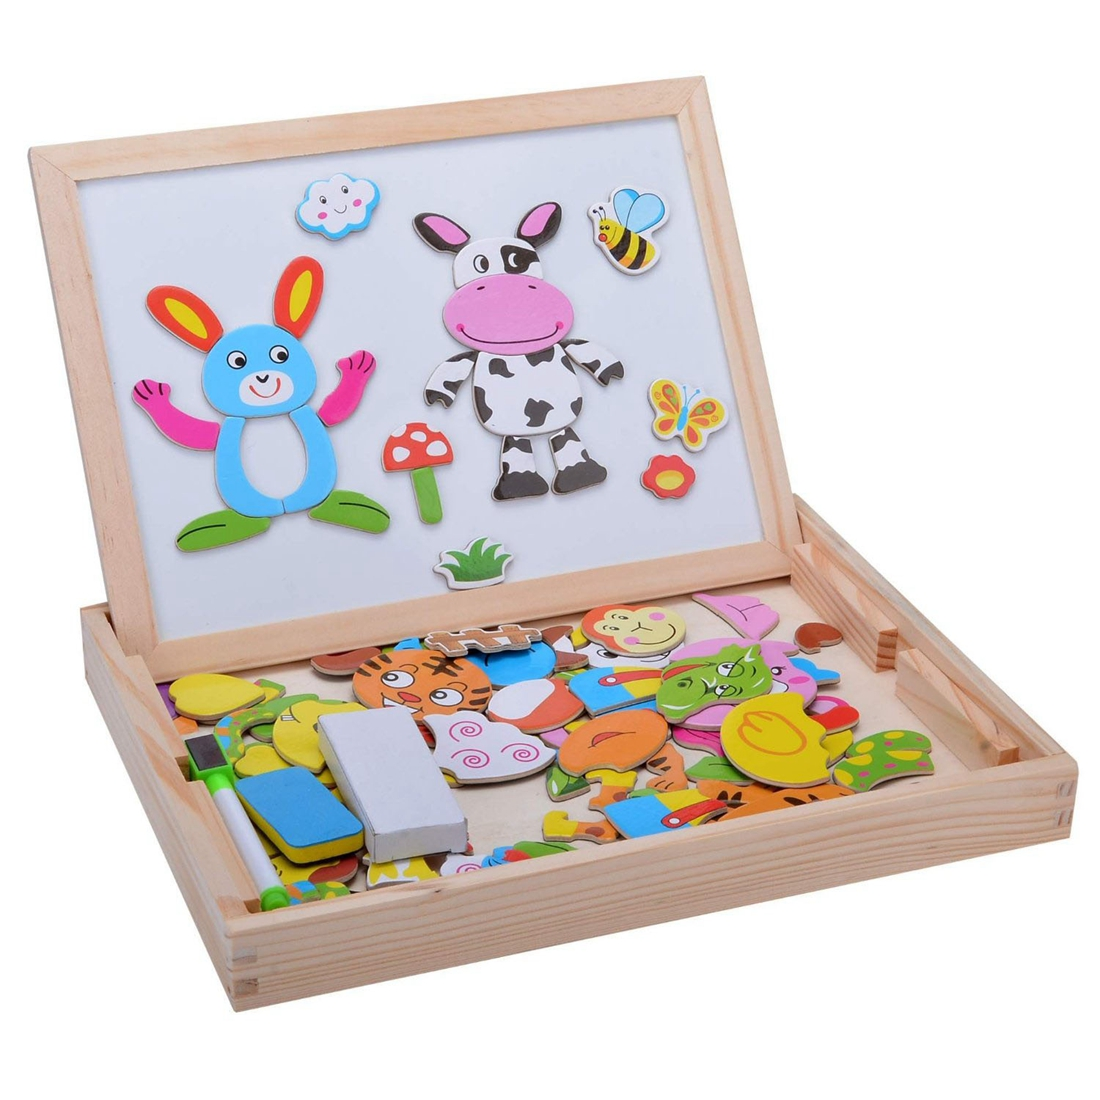 Childrens Wood Puzzle Multifunction Double Sided Magnetic Drawing Board Puzzle - Twelve Zodiac